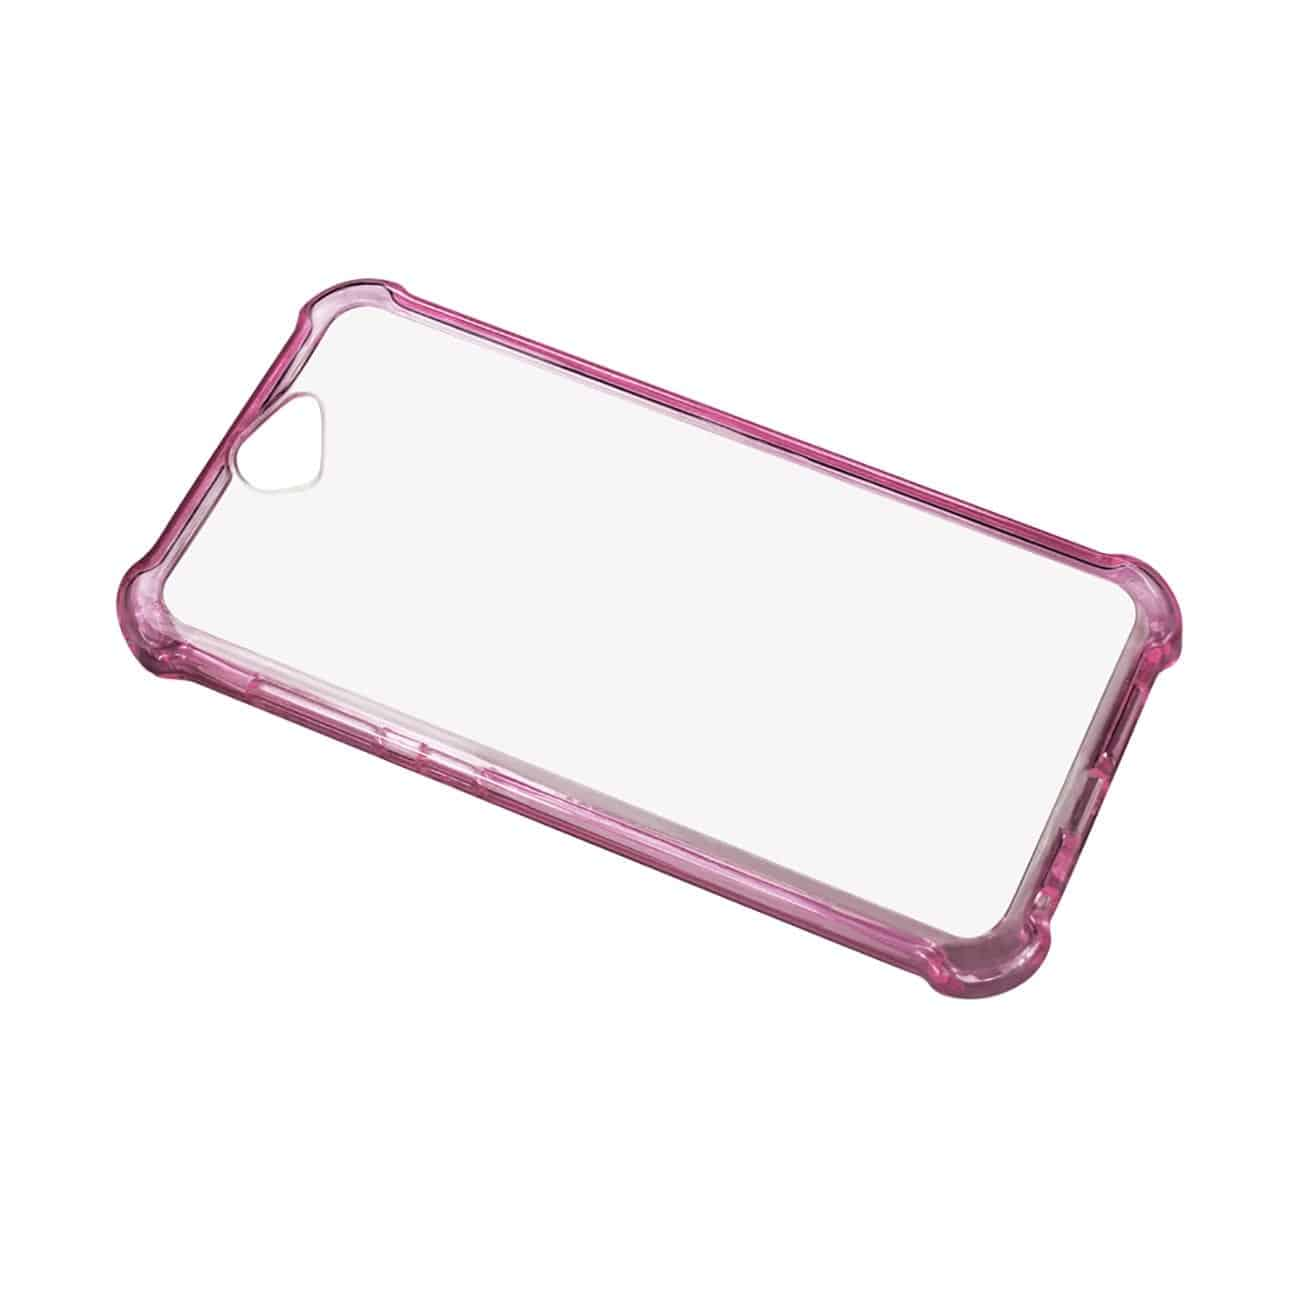 HTC ONE A9 MIRROR EFFECT CASE WITH AIR CUSHION PROTECTION IN CLEAR HOT PINK